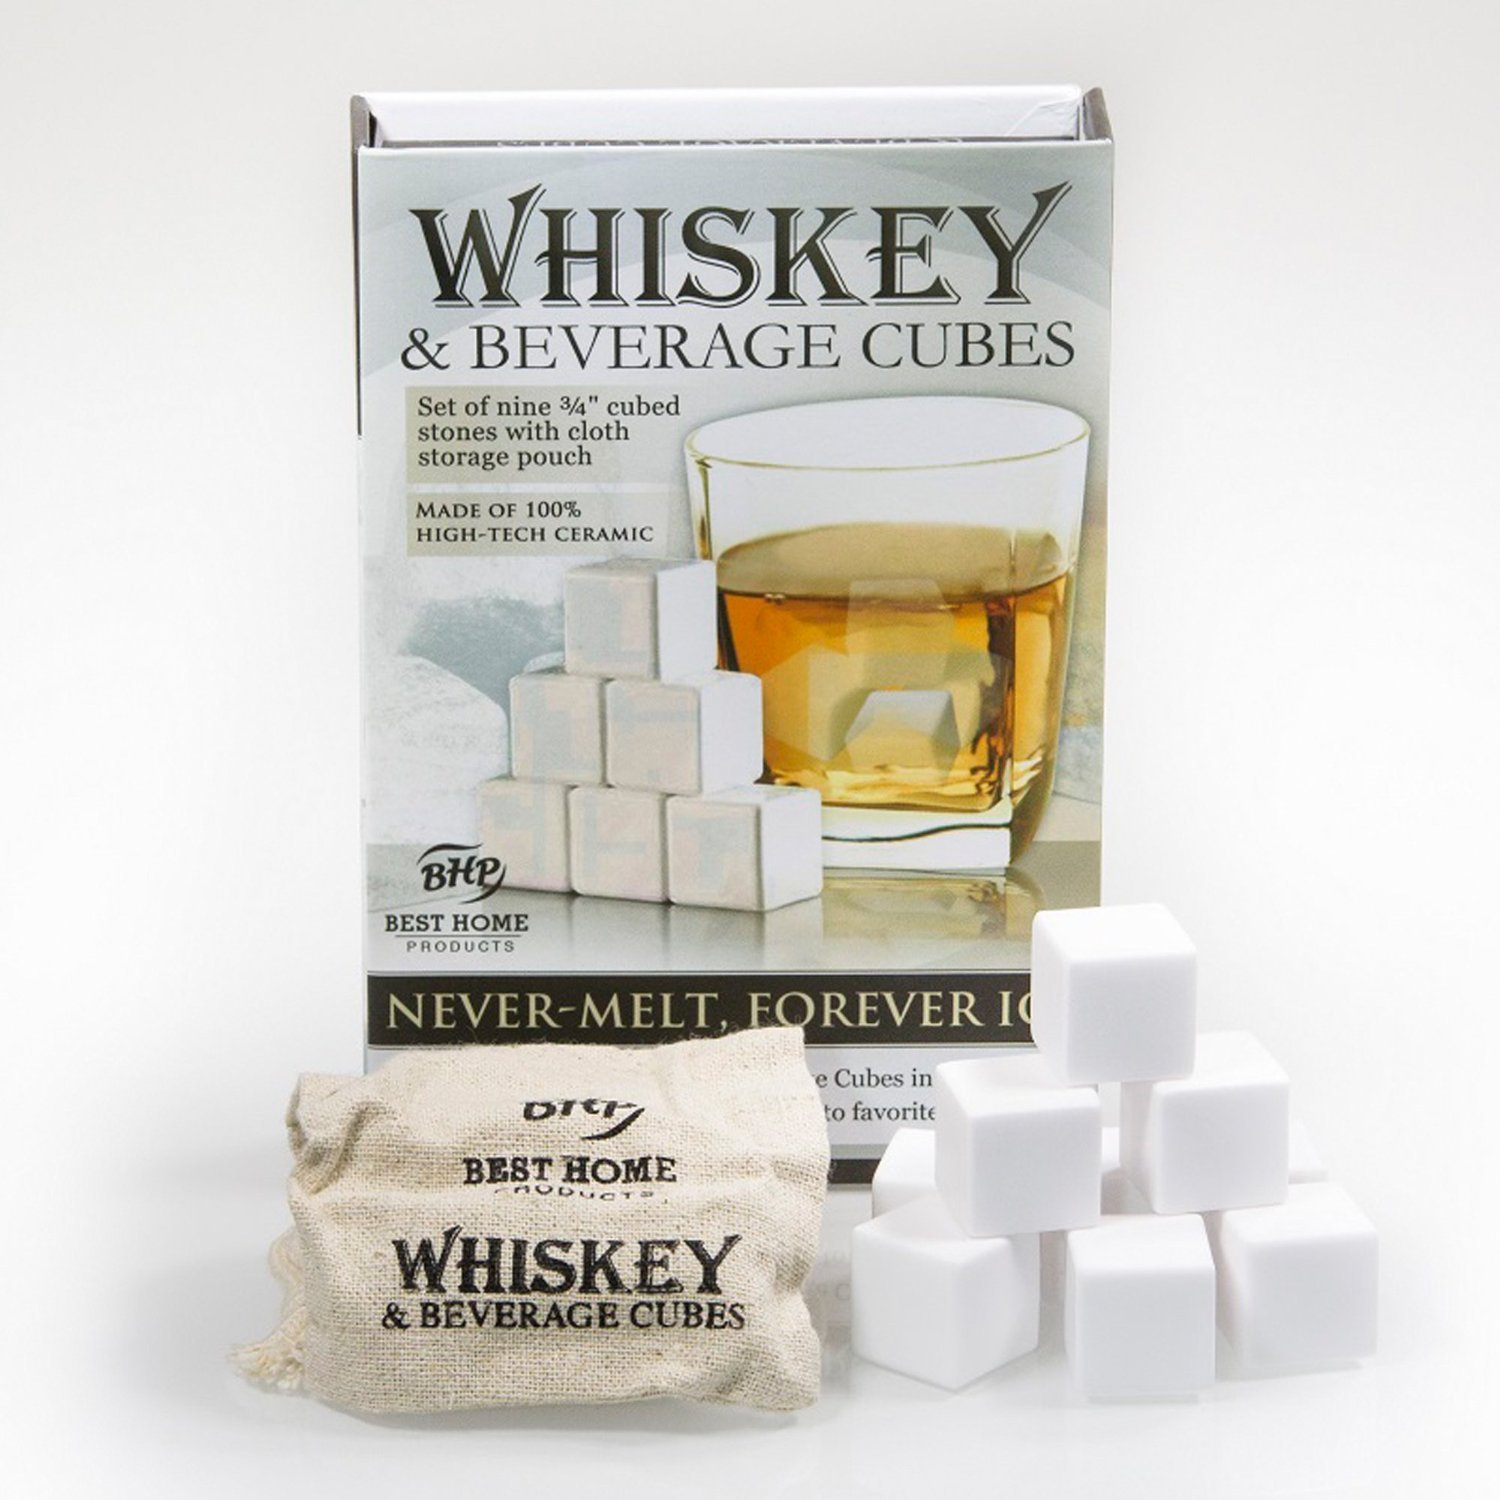 Ceramic Whiskey Stones, Beverage Cubes, Set of 9 with Storage Bag